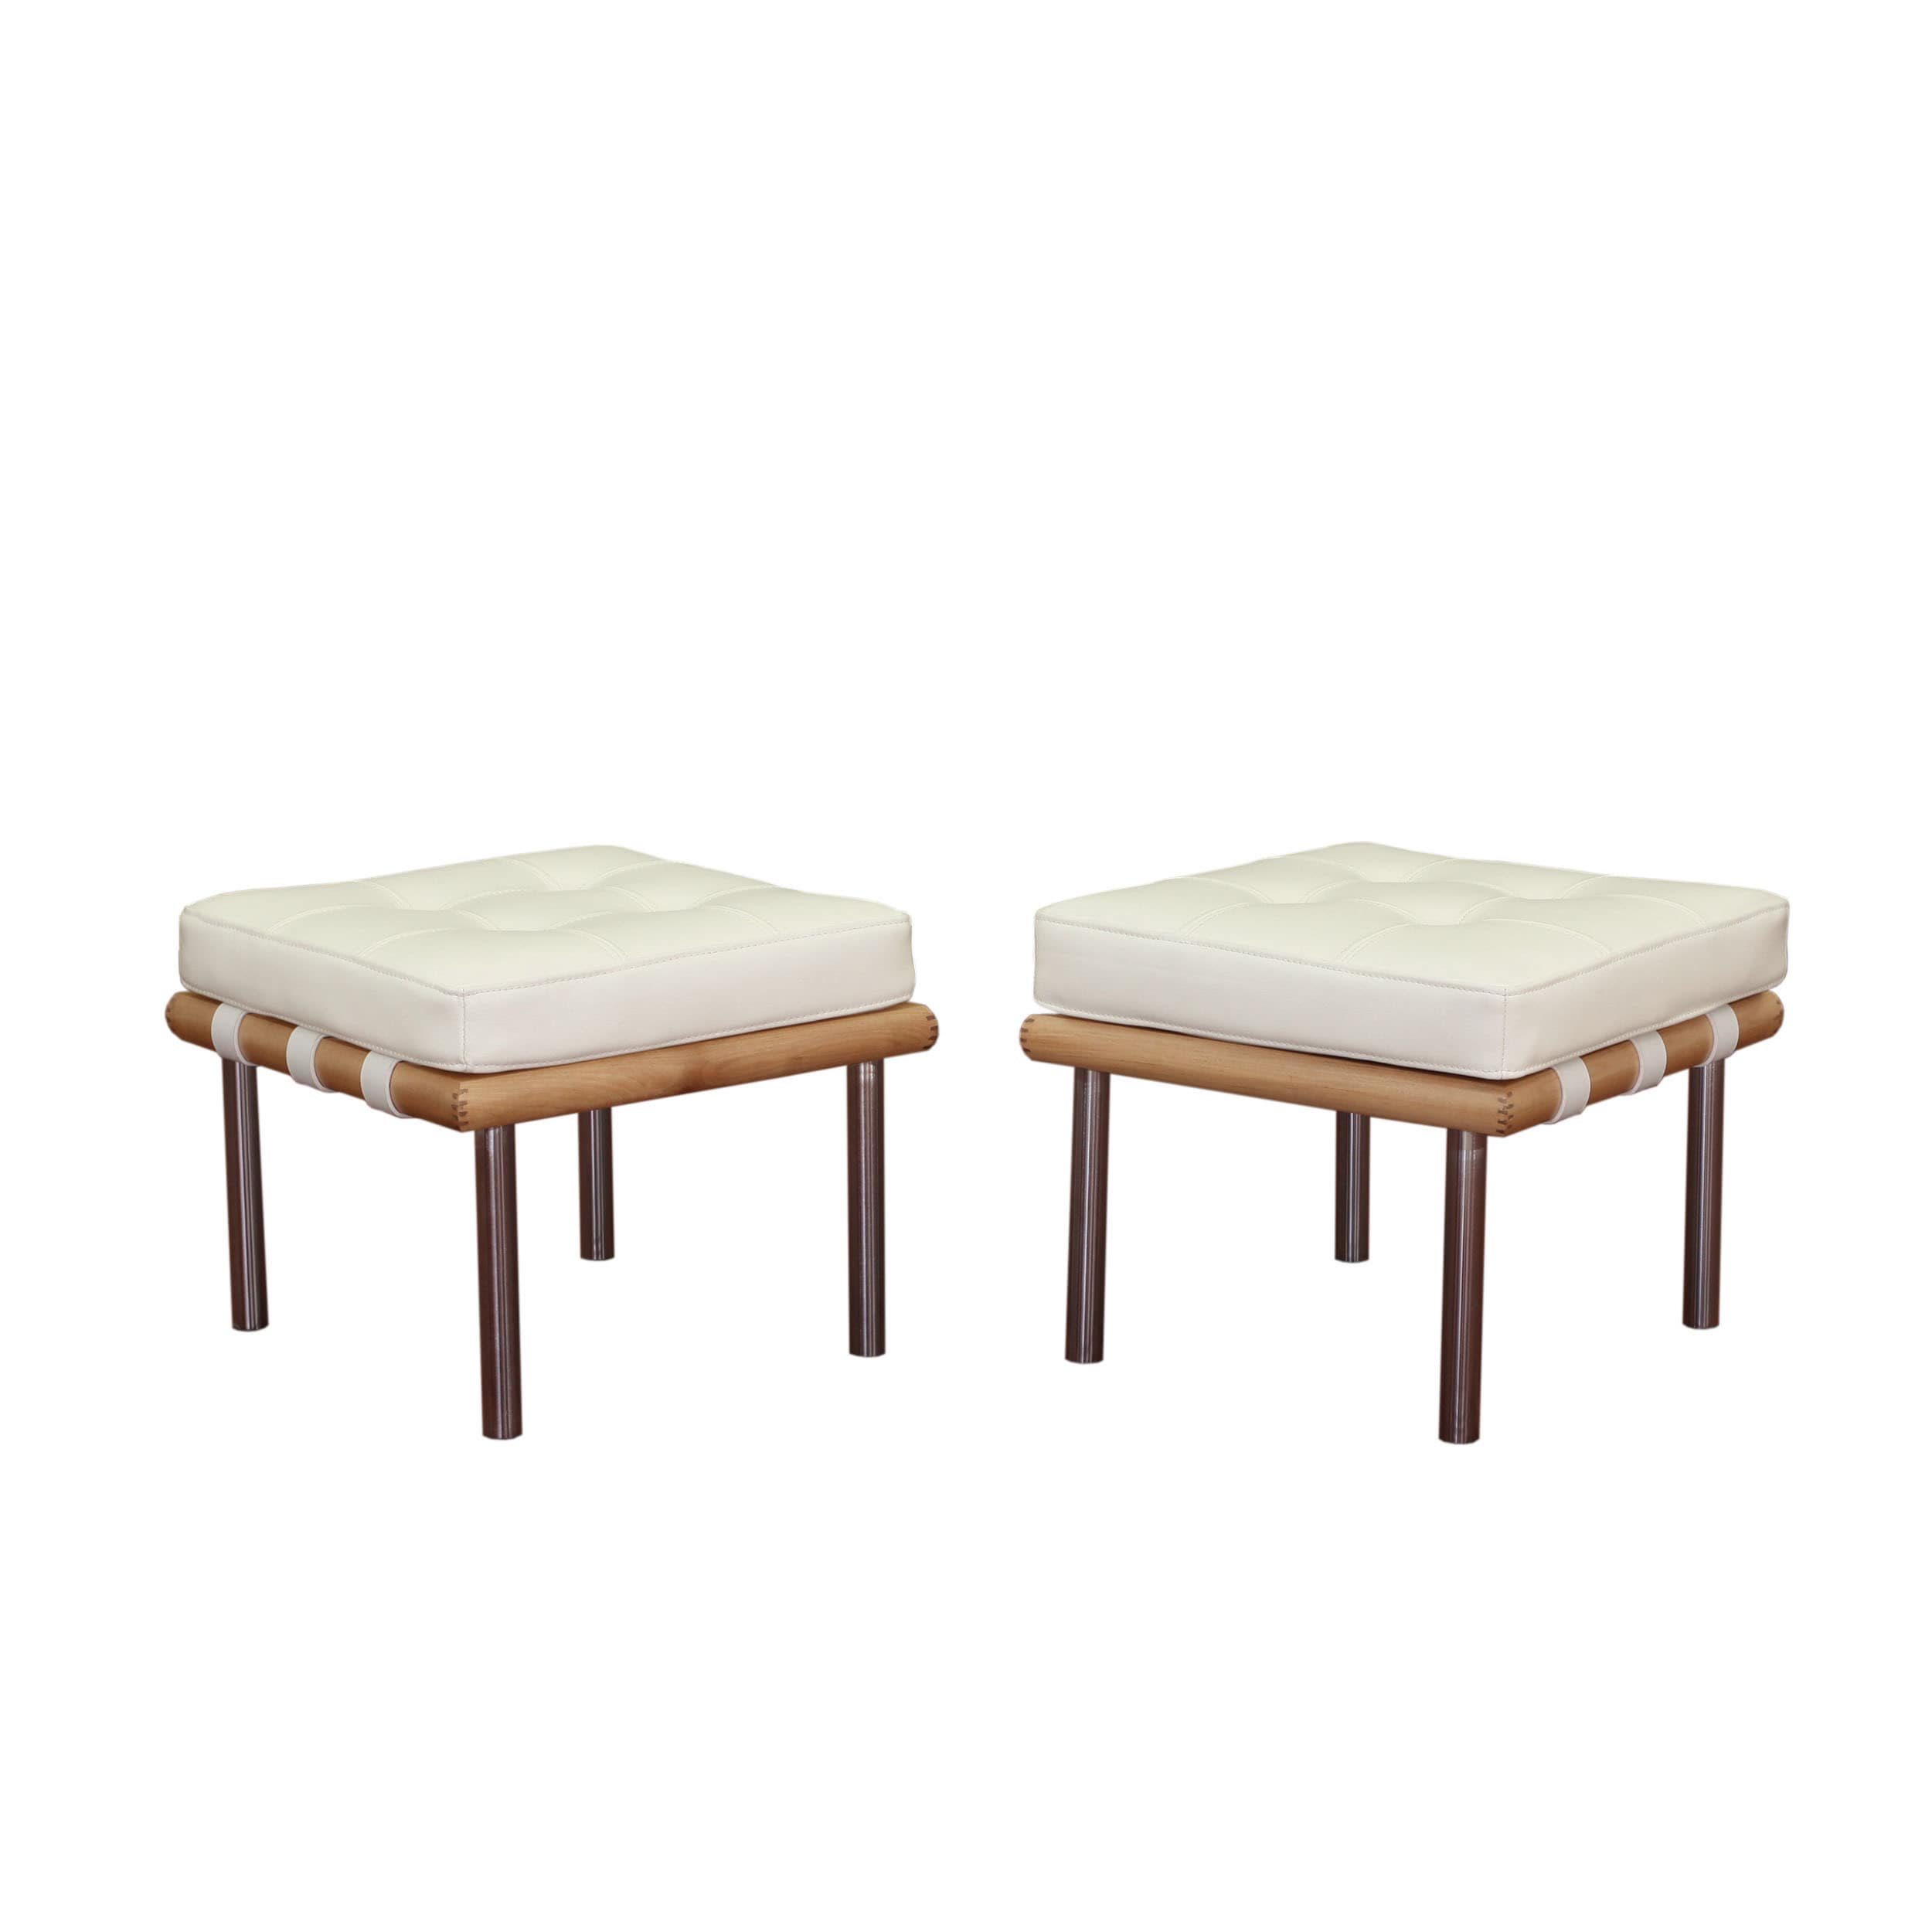 Andalucia Modern Cream Leather Ottoman Set of 2 Free Shipping